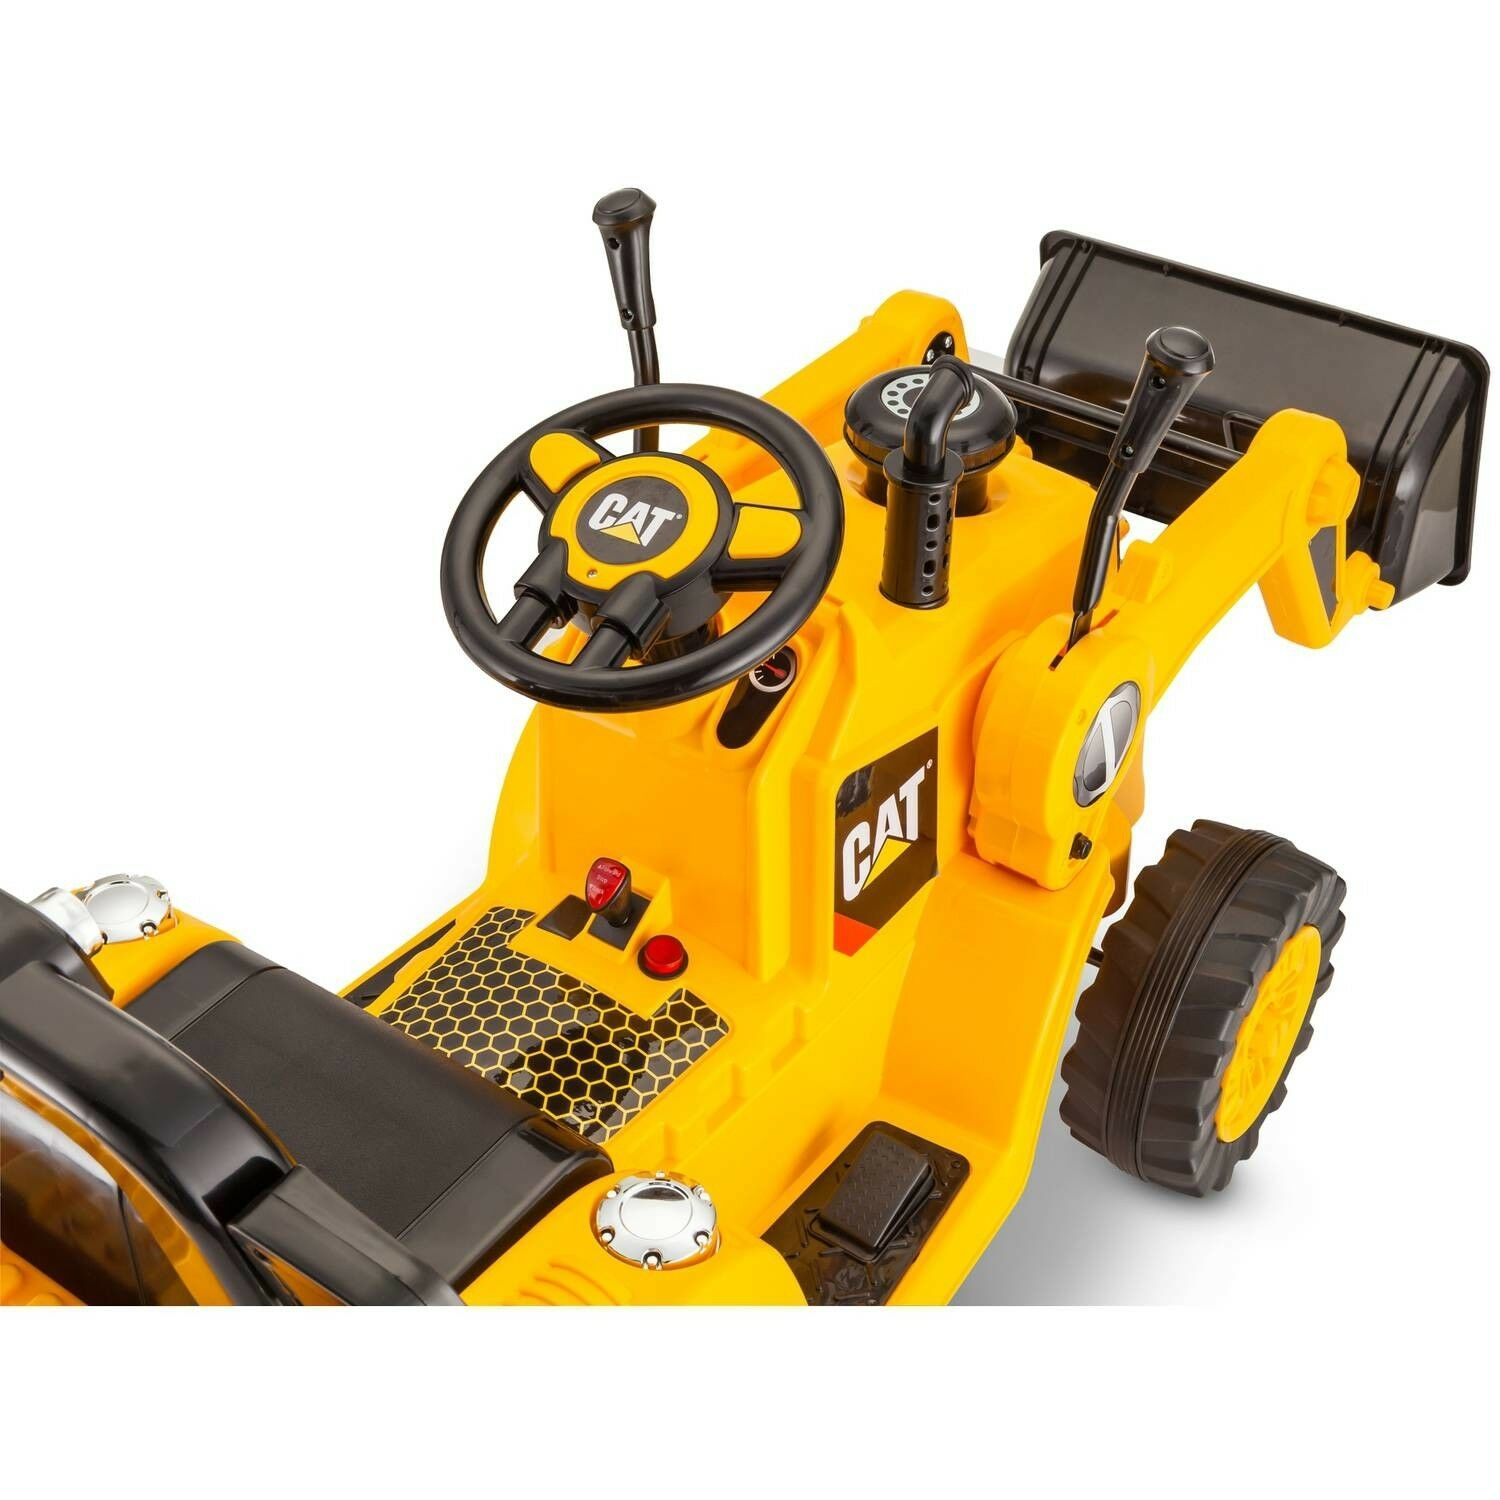 CAT Bulldozer Tractor Kids Boys Pretend Play Play Play Riding Toys 6v Powered Ride-On 9f2c1f